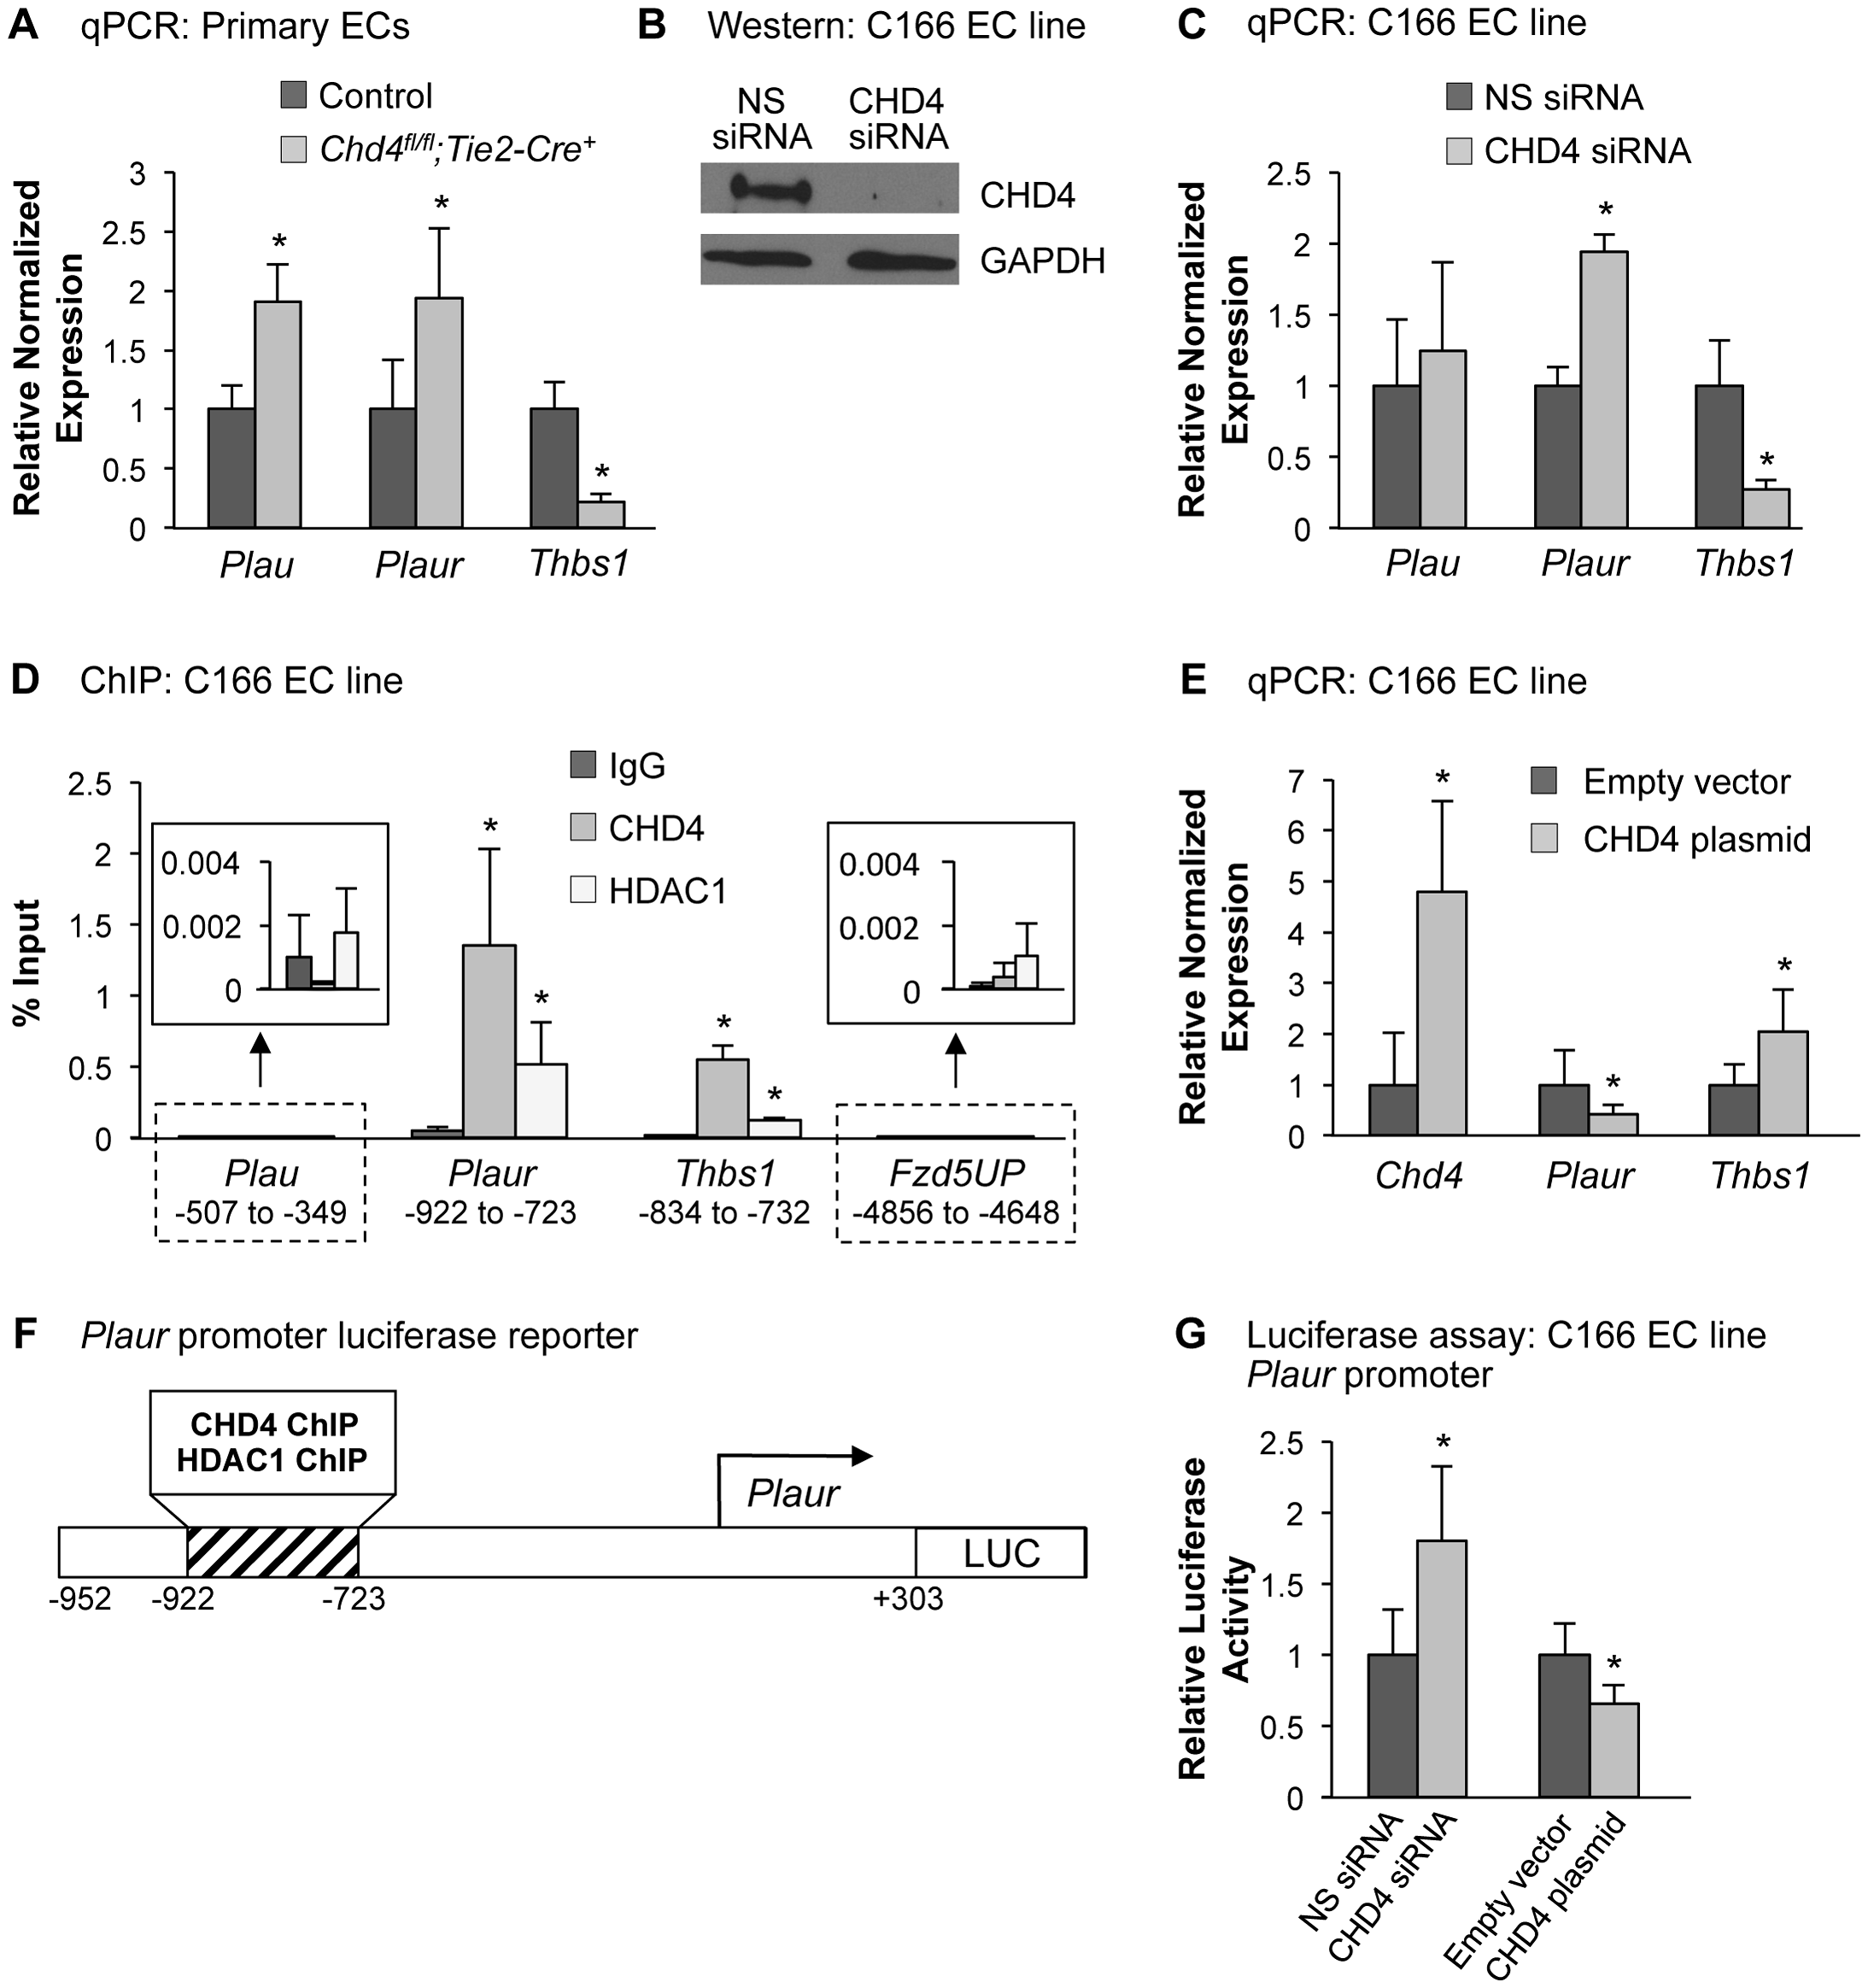 CHD4 differentially regulates <i>Plaur</i> and <i>Thbs1</i> expression in endothelial cells.